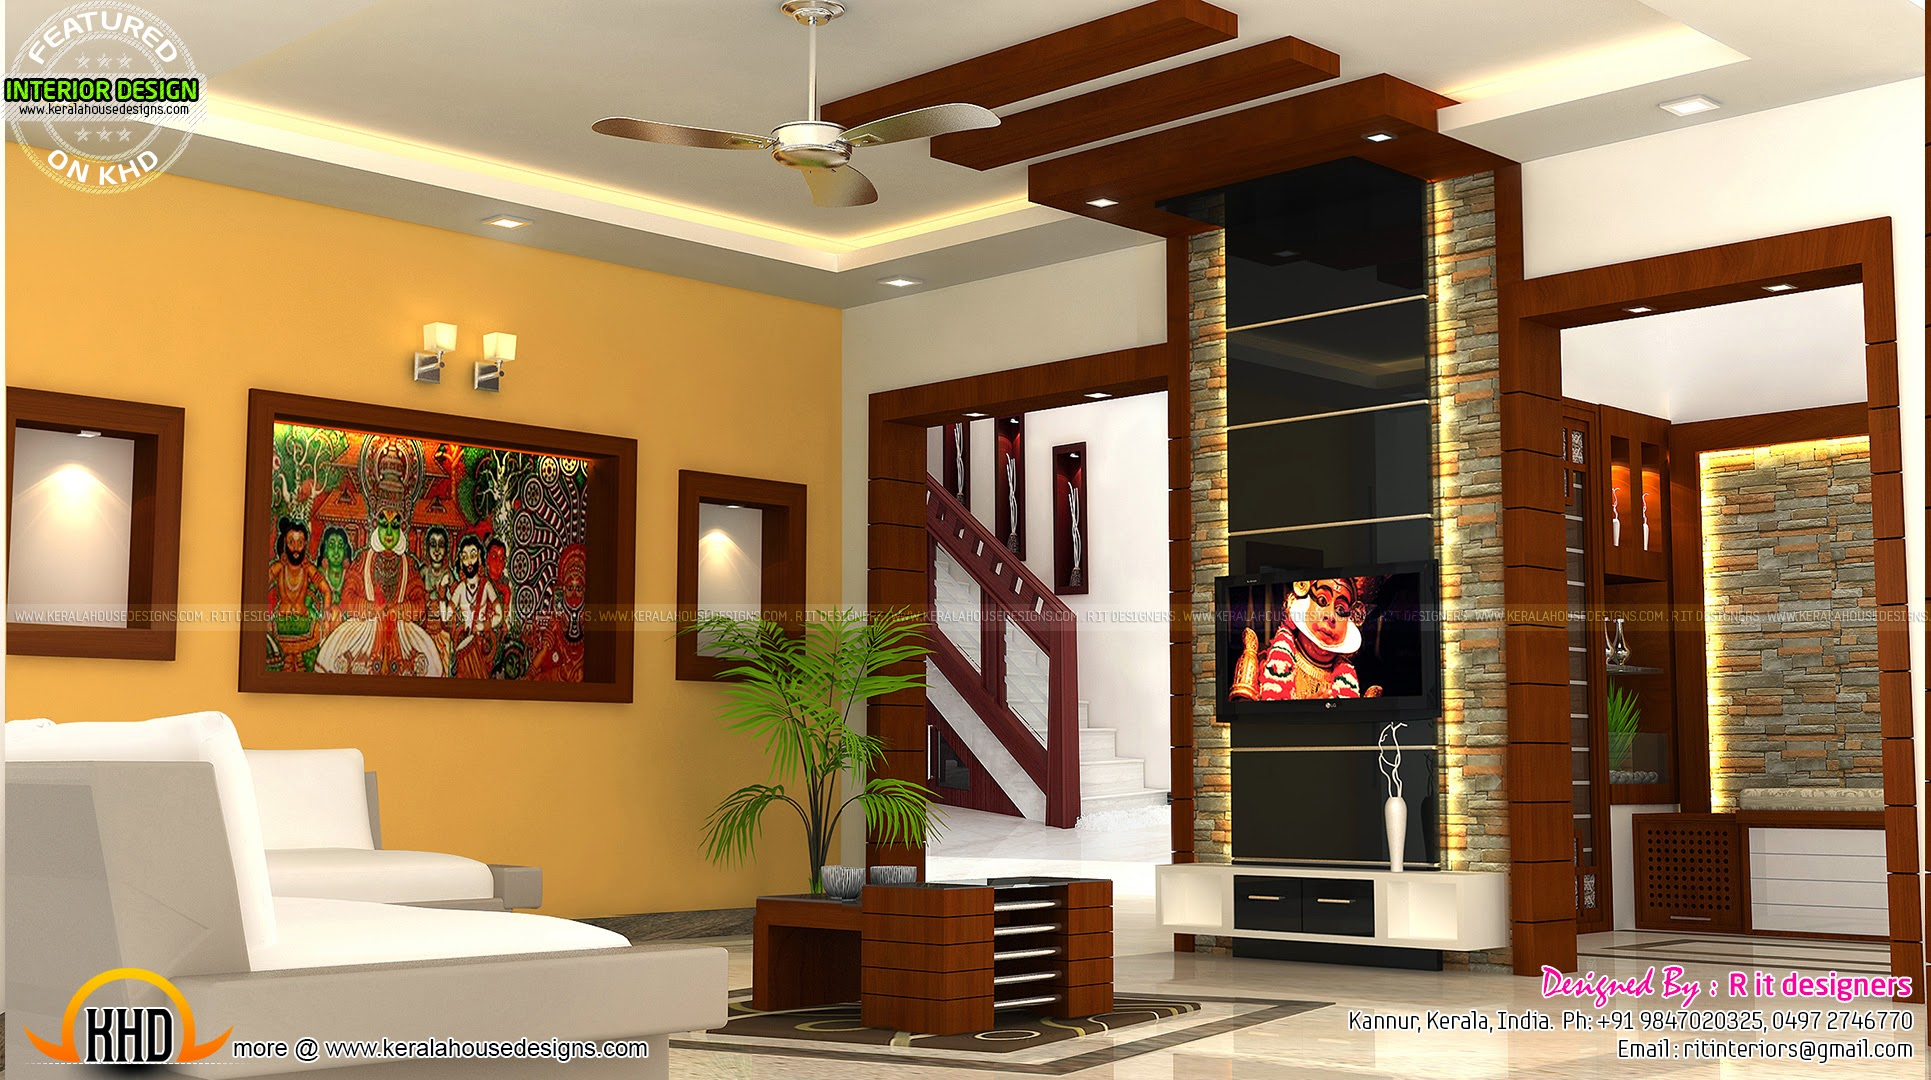 Interior Designs At Home Of Kerala Interior Design With Cost Kerala Home Design And